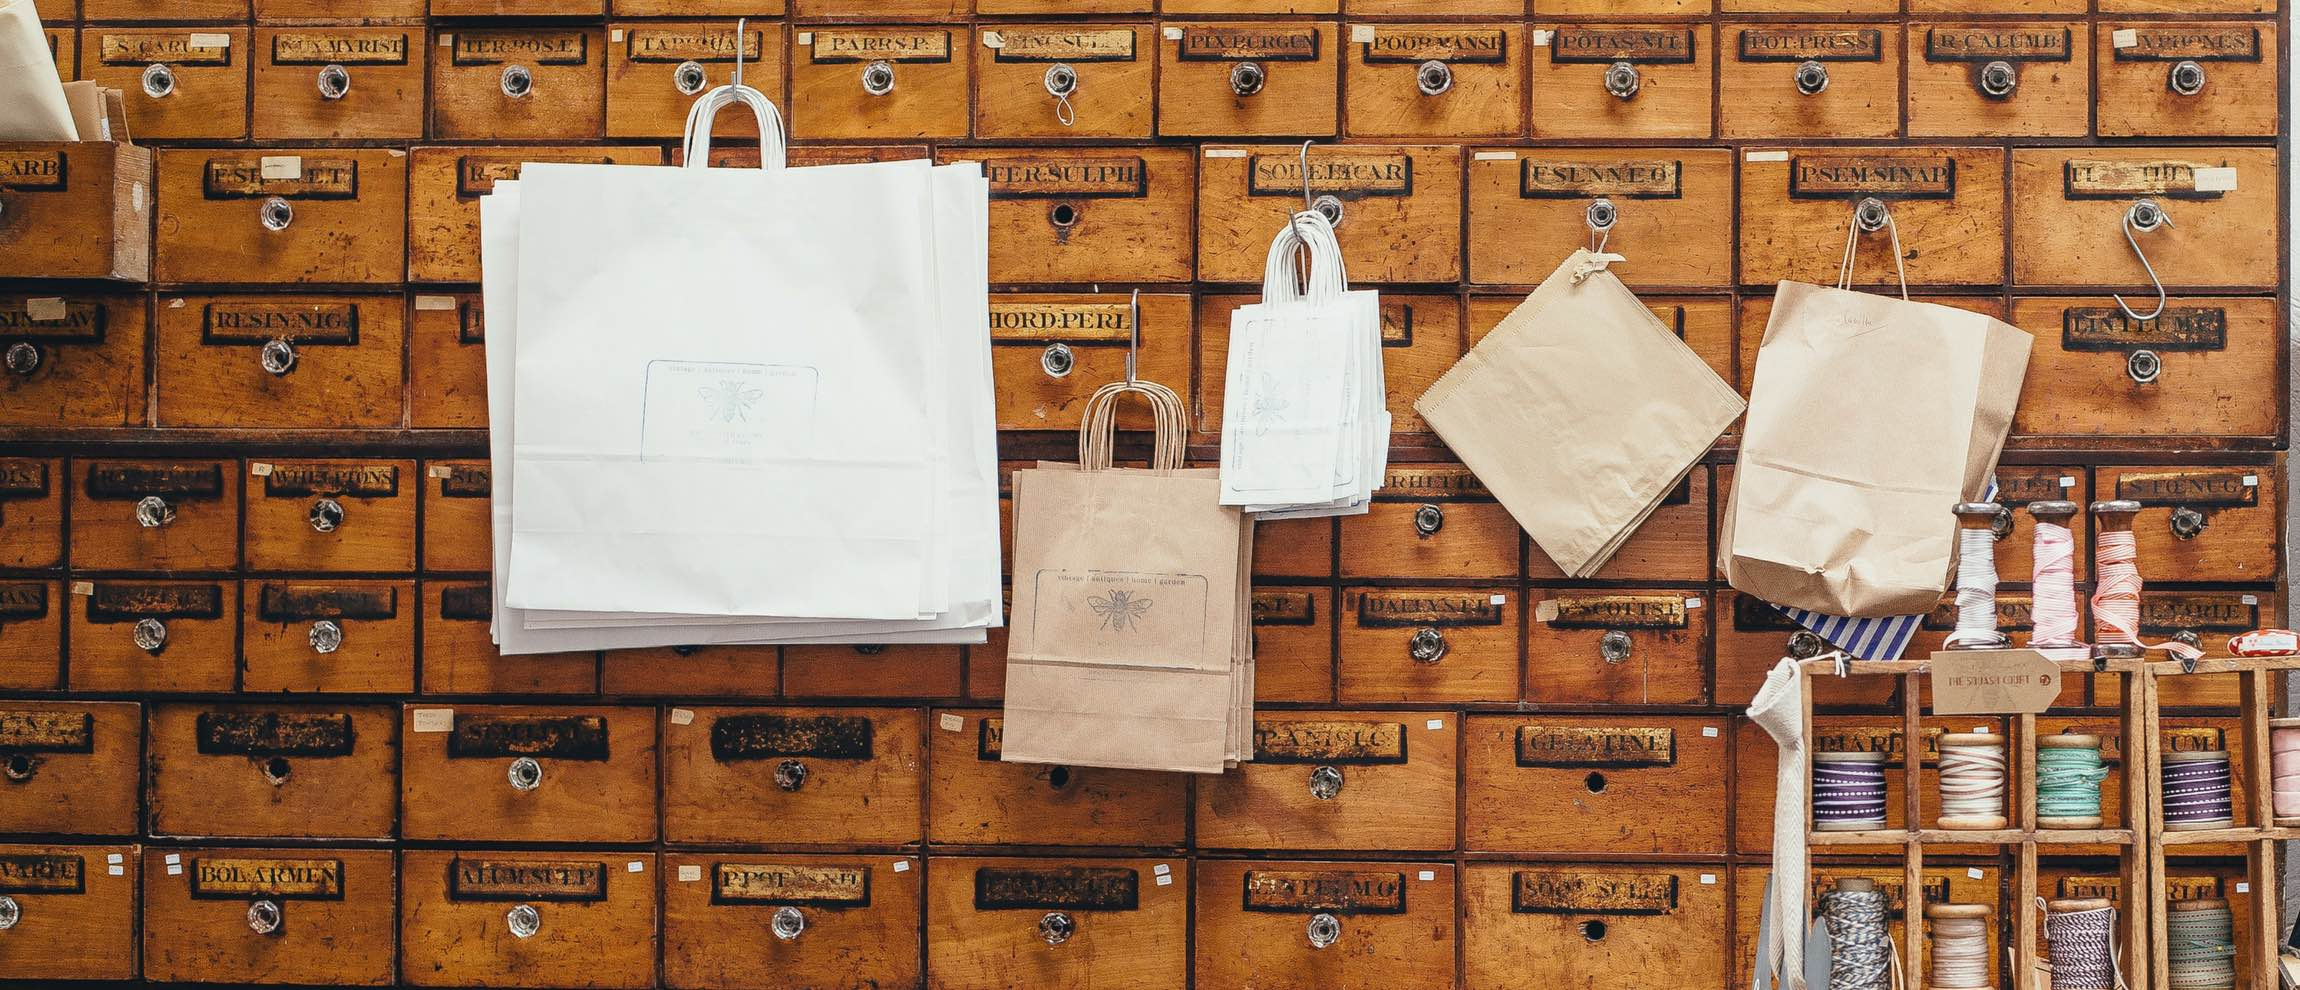 What's your customer loyalty program strategy?